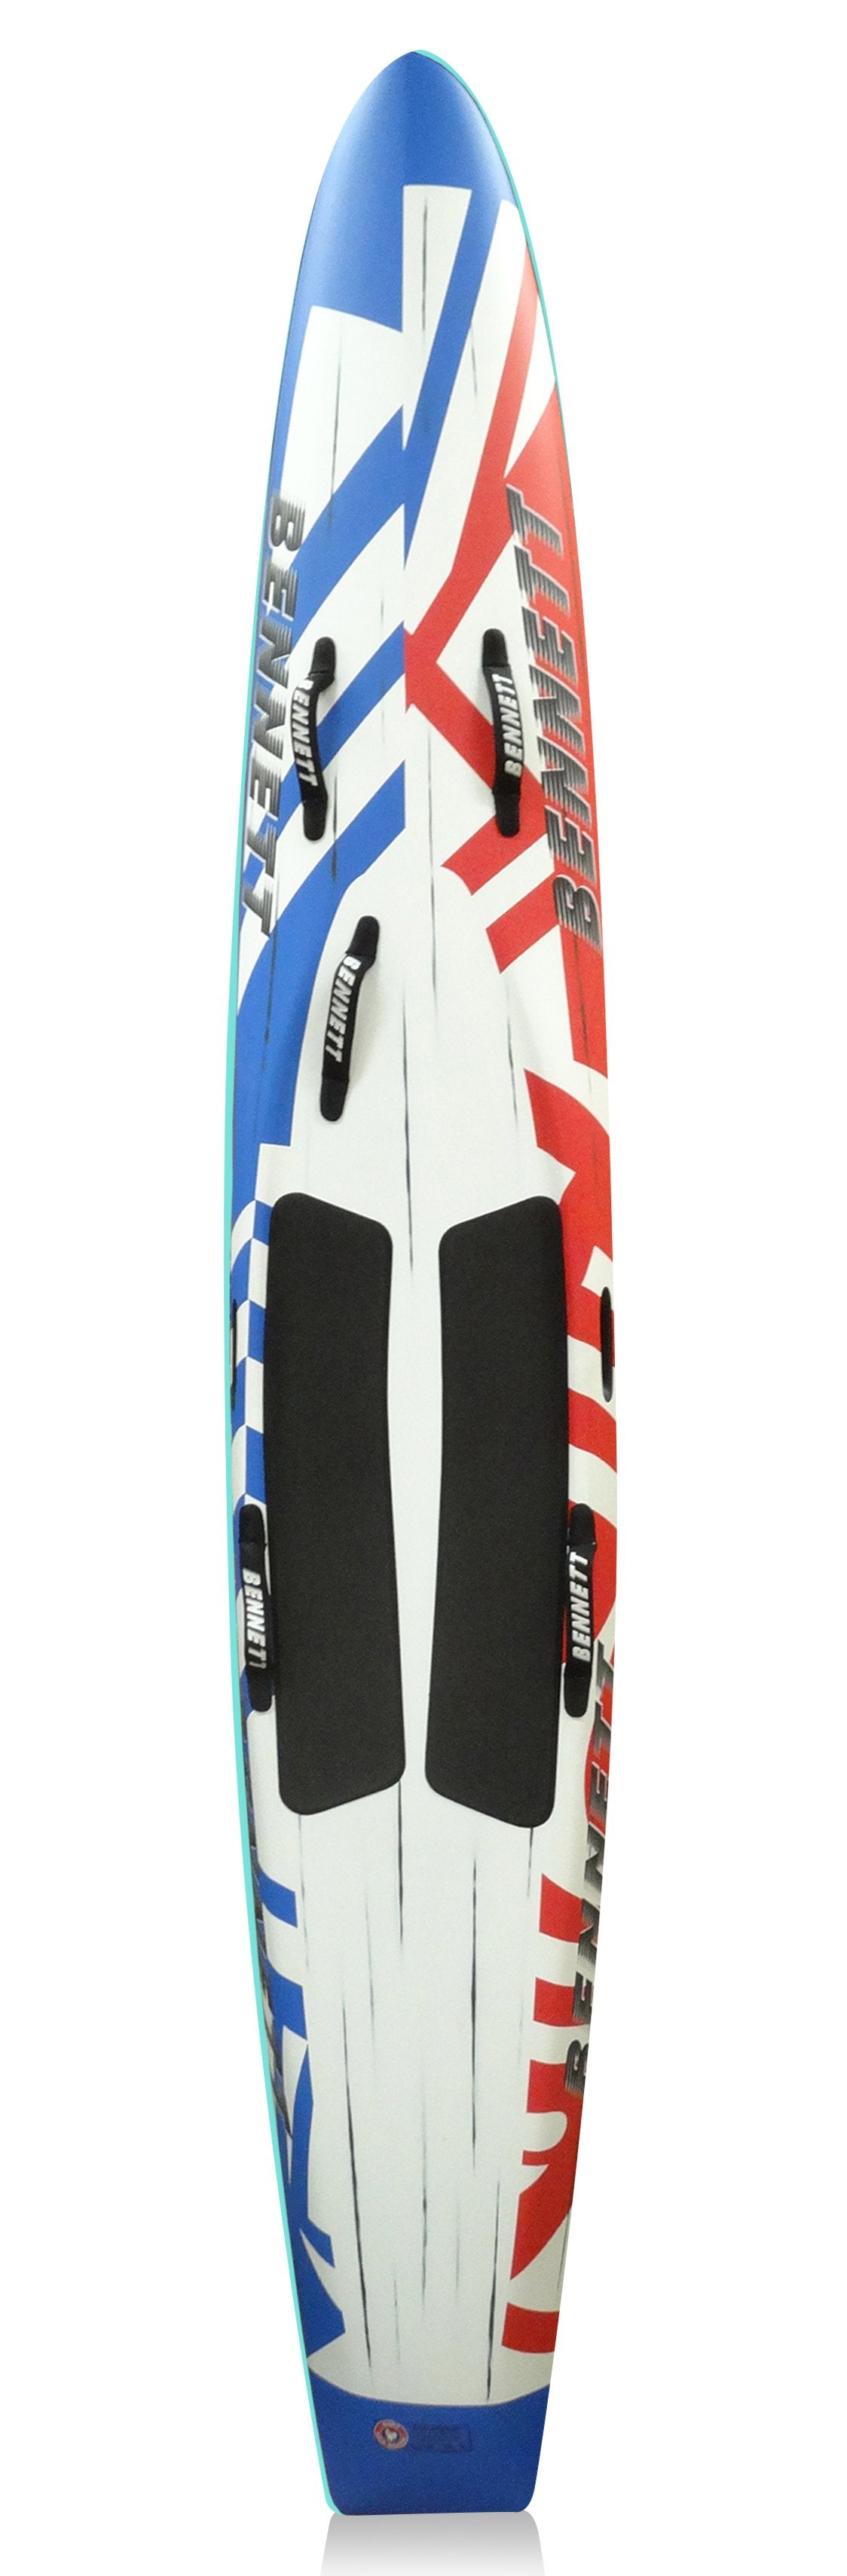 "Brushed Carbon 10'6"" Race Board"